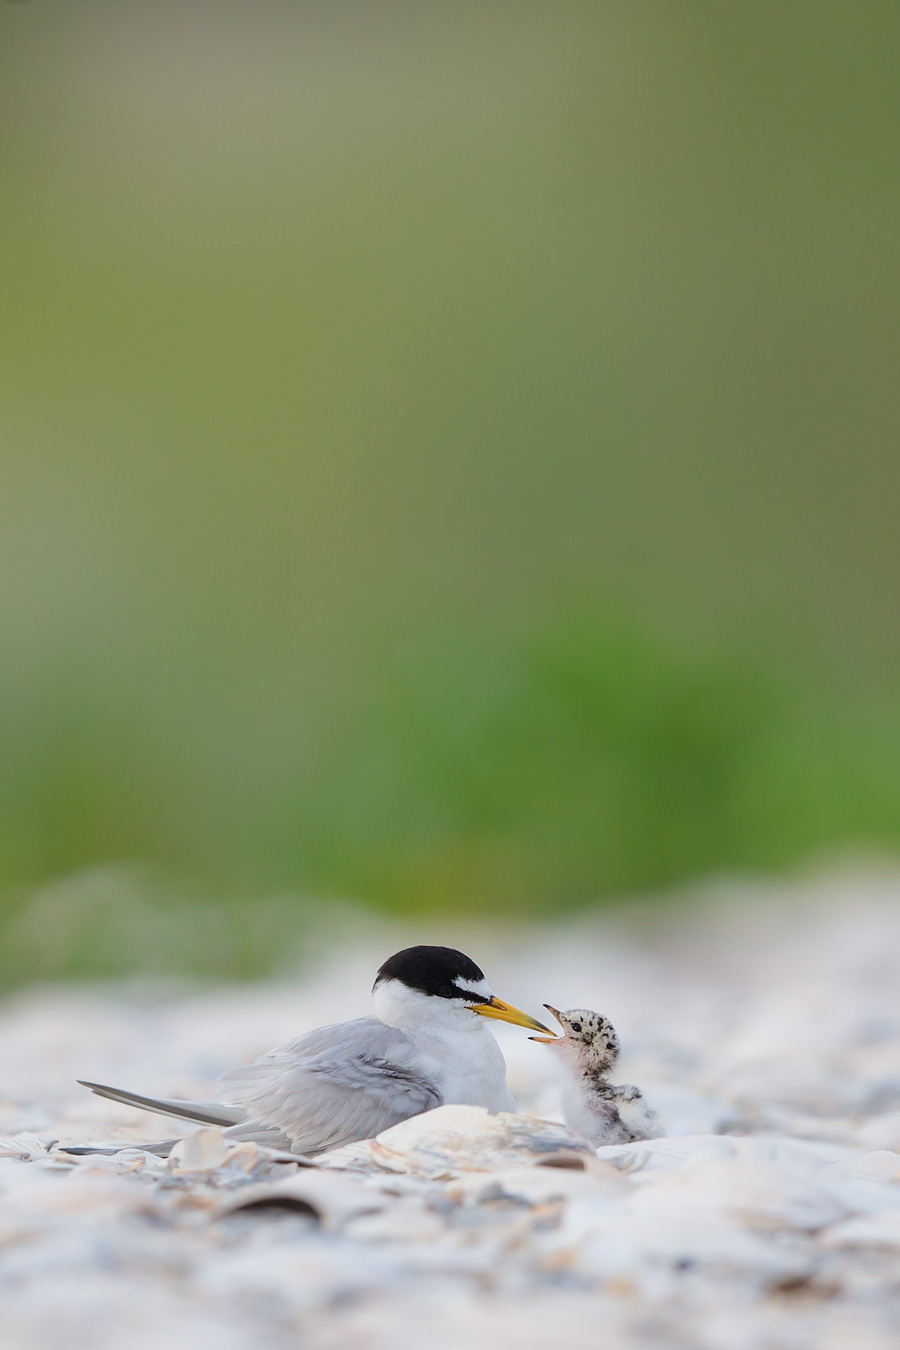 As a Part II to our previous post Most Love For The Least Tern: Operation Snuggletime,  we infiltrate a Least Tern colony to explore everybody's second favorite activity, Nom Nom, to see if Least Tern should actually be the preferred beach nesting bird of the shore.